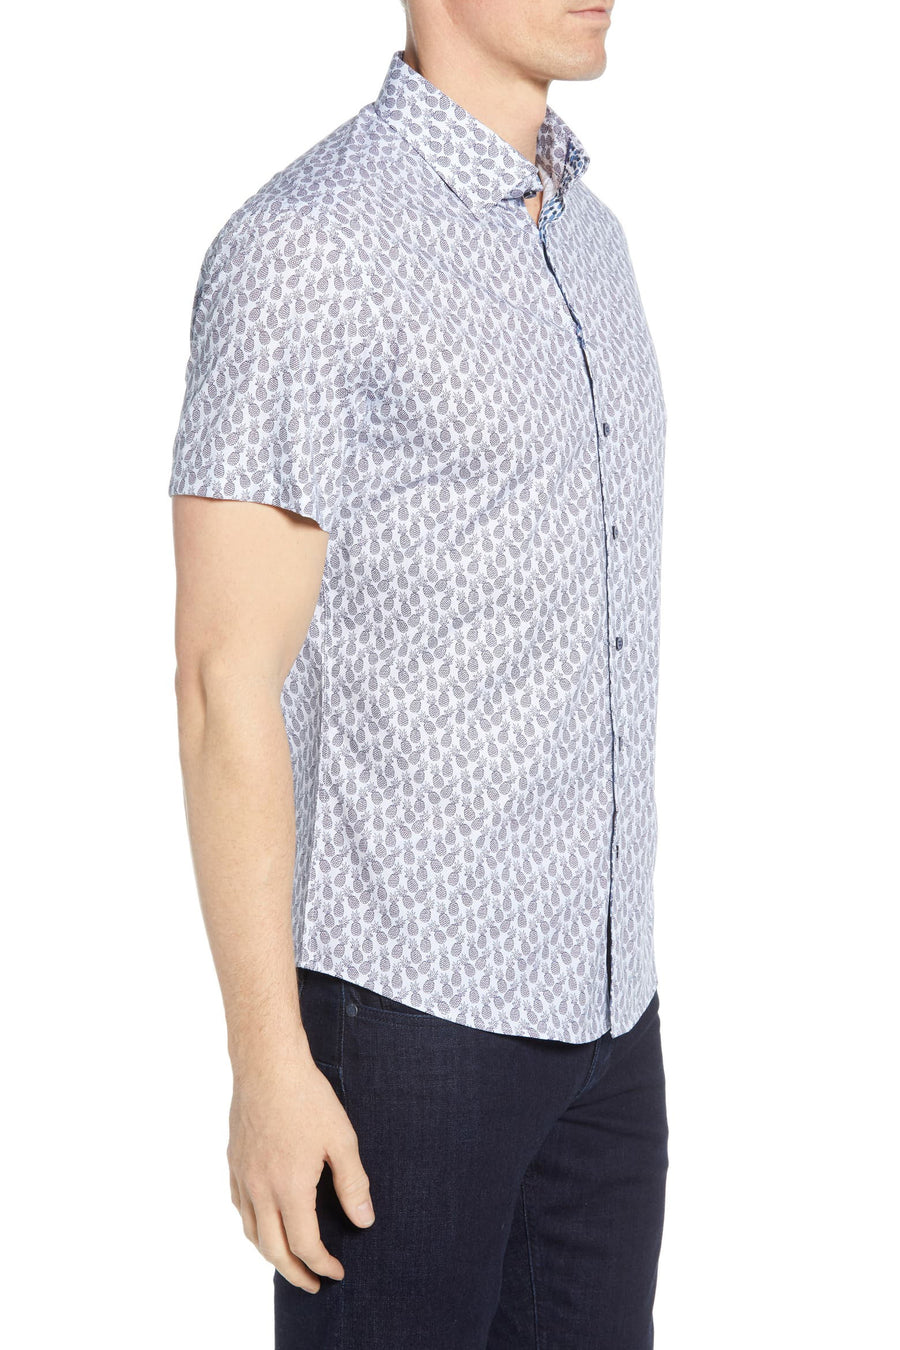 Short Sleeve Woven Button Down - Pineapple Print - Pavilion